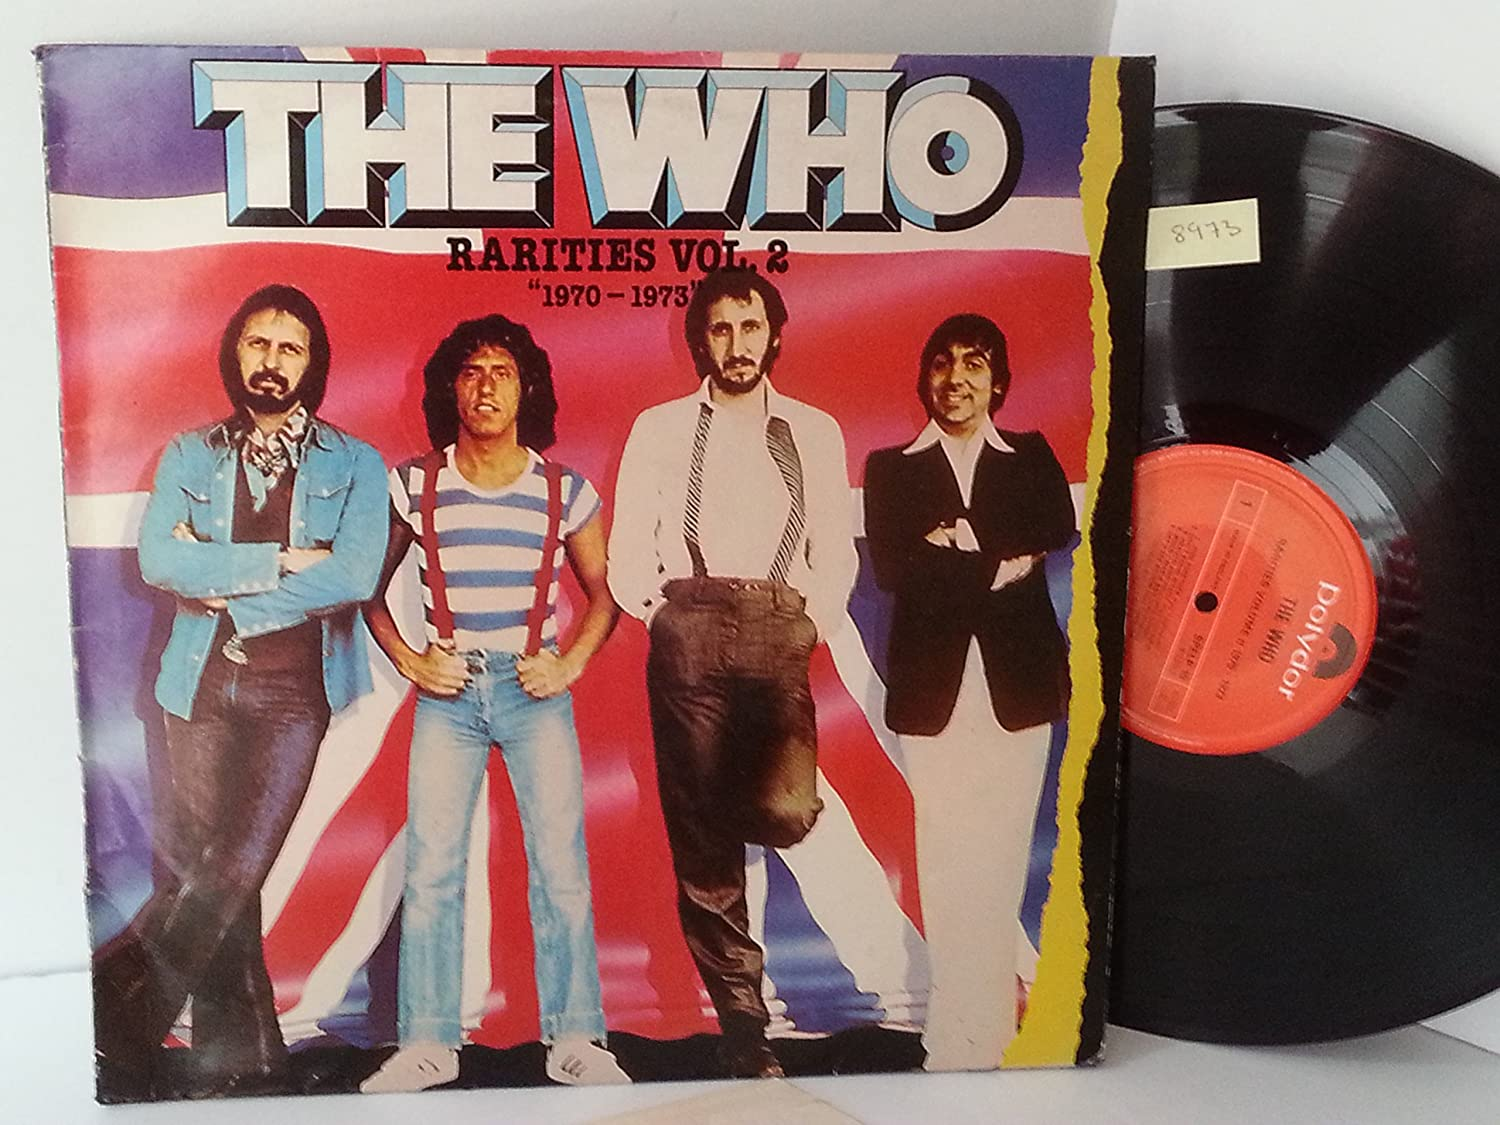 THE WHO rarities vol 2,1970-1973, SPELP 10: Amazon co uk: Music